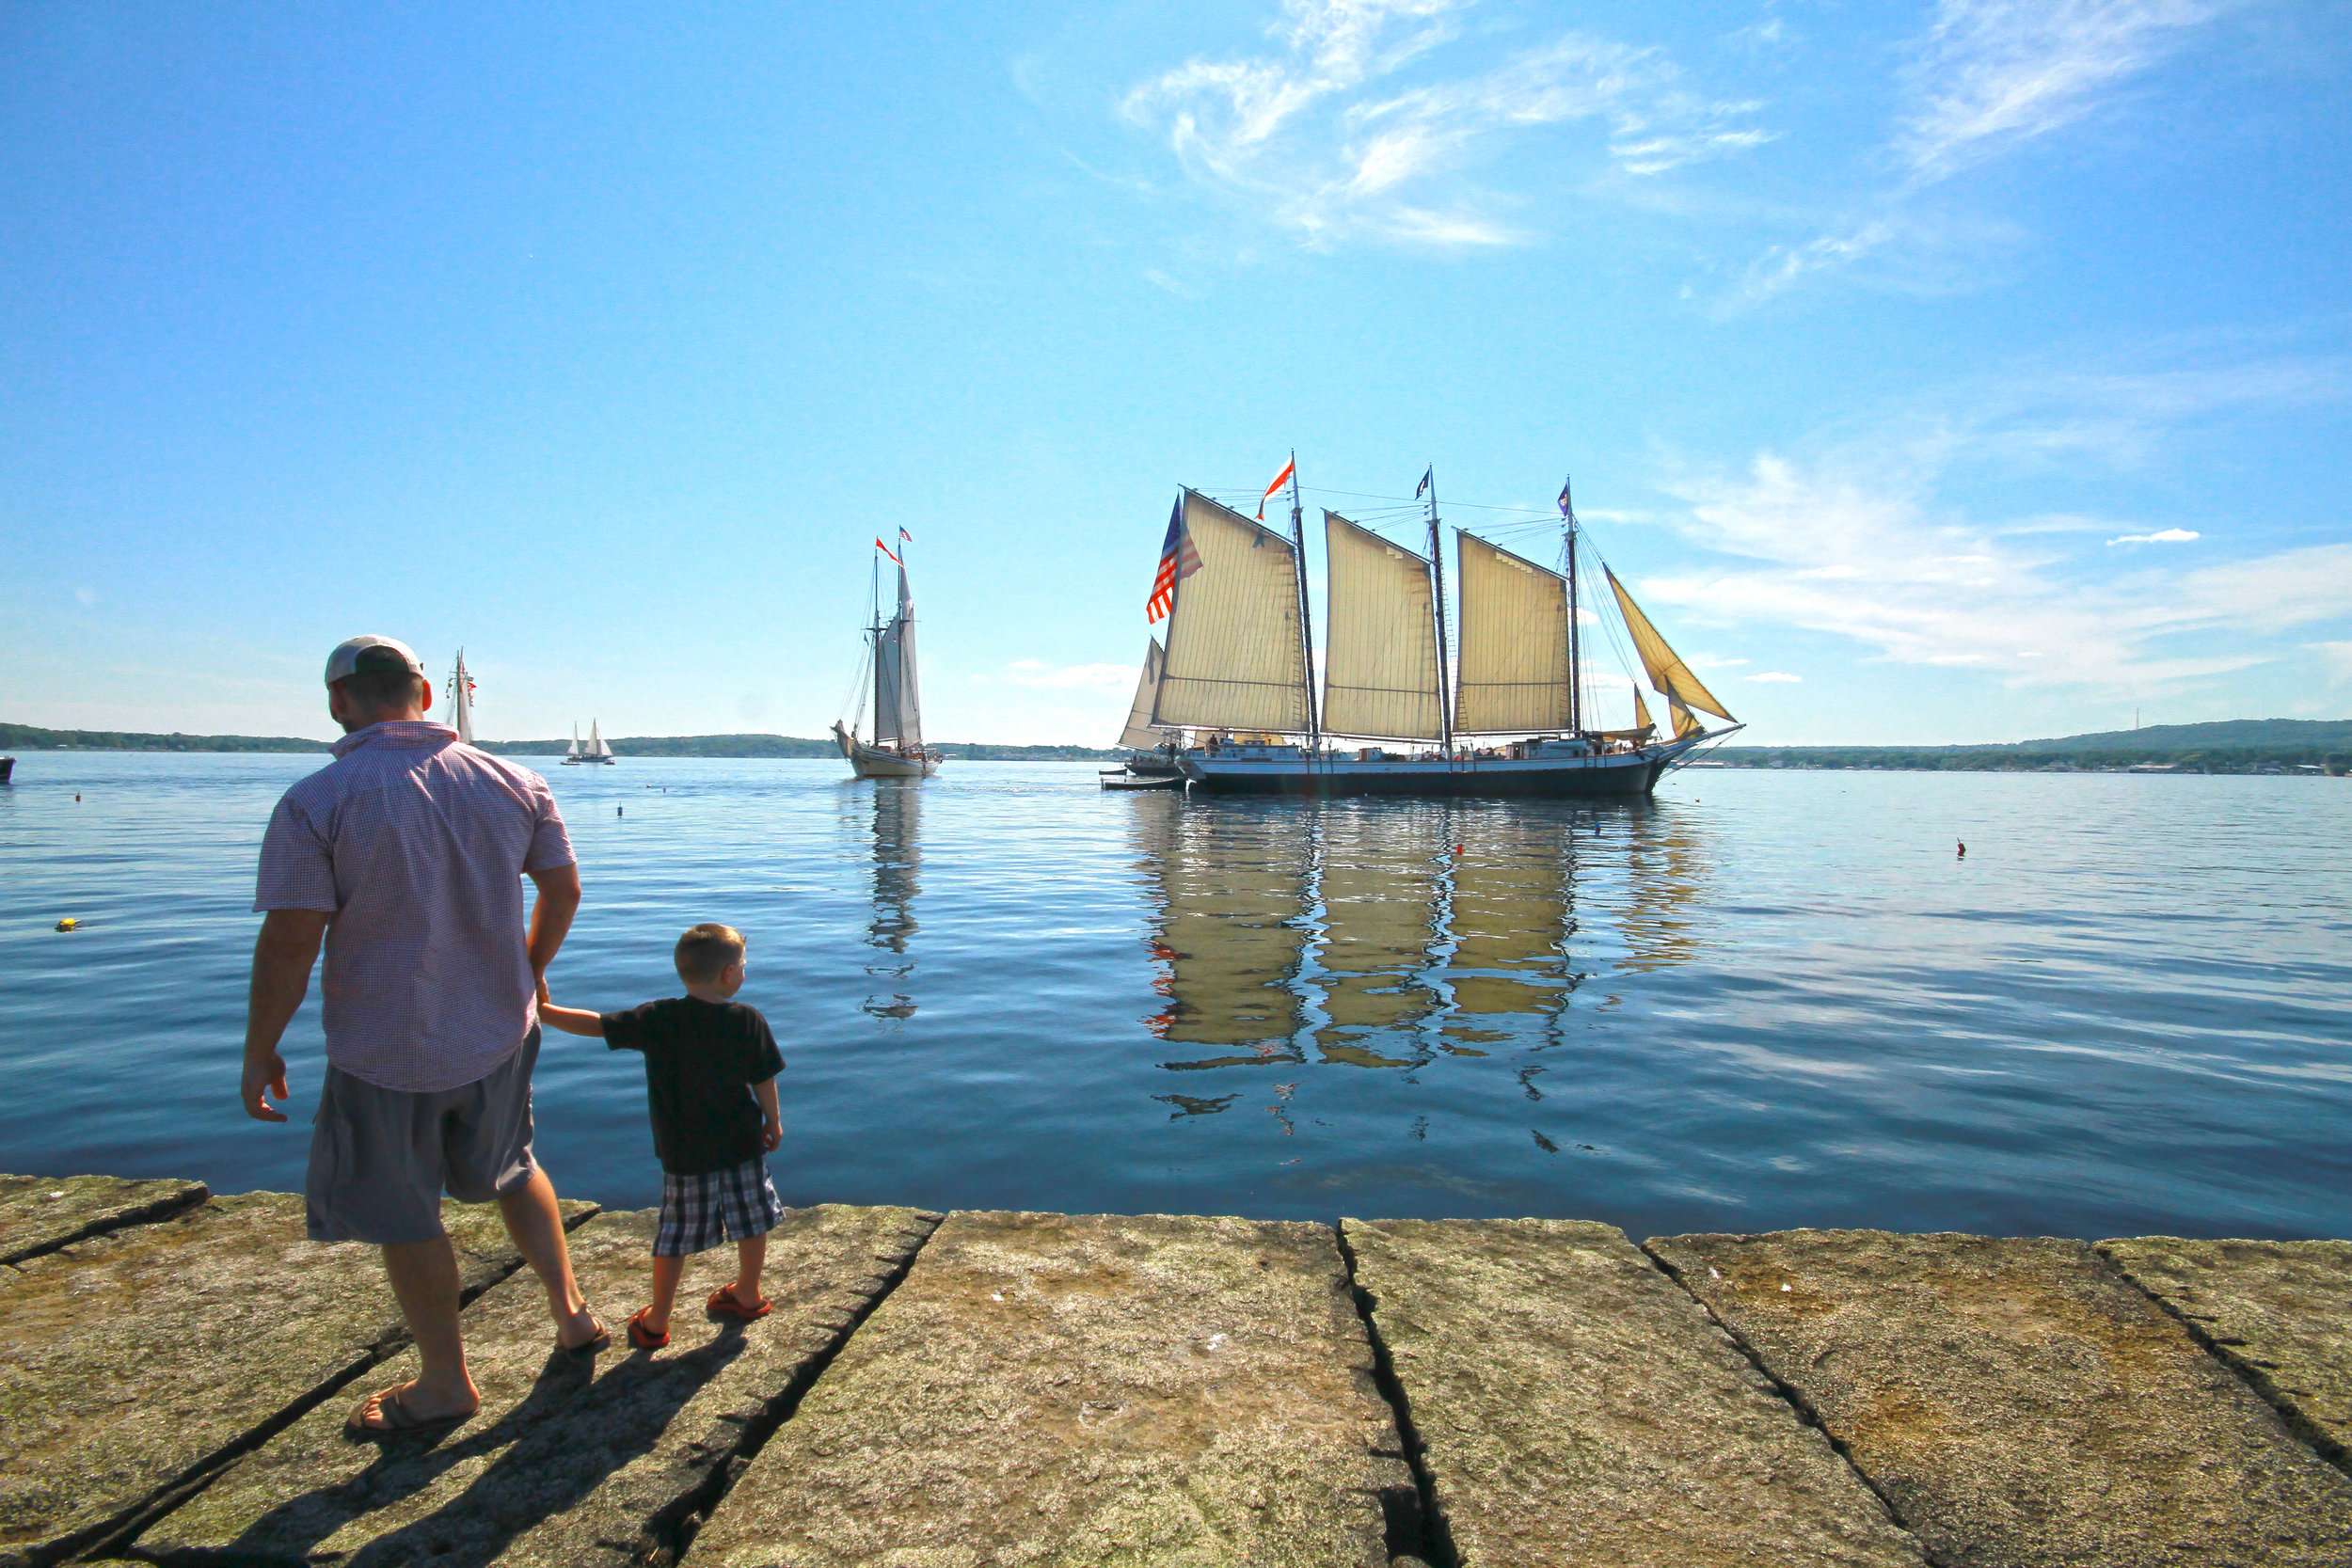 kid-tall-ship-hi-res.jpg